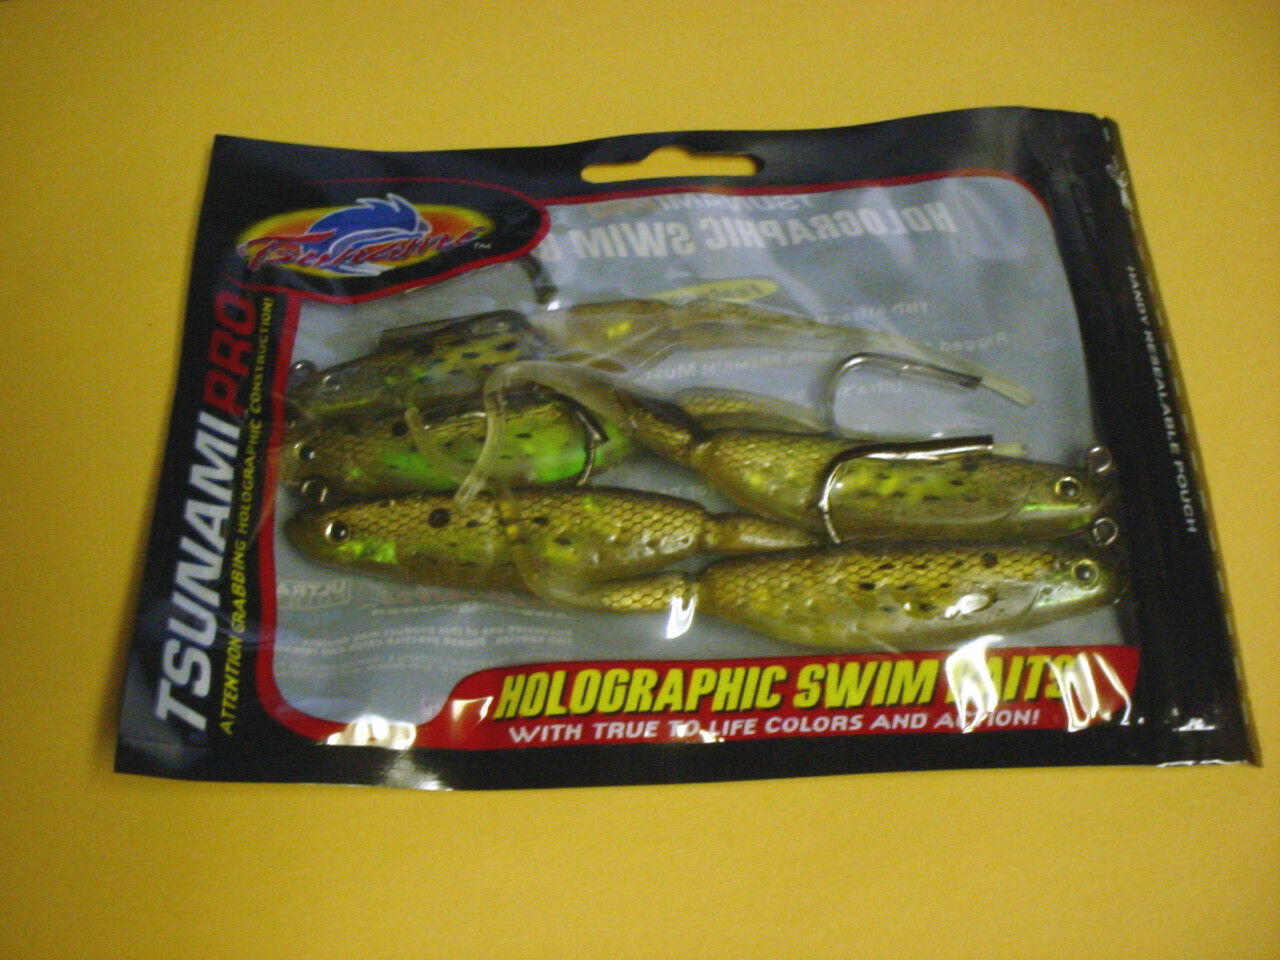 CASE OF 96 TSUNAMI PRO HOLOGRAPHIC SWIM BAITS 5 TROUT MAULER GoldEN BUNKER TM5-4